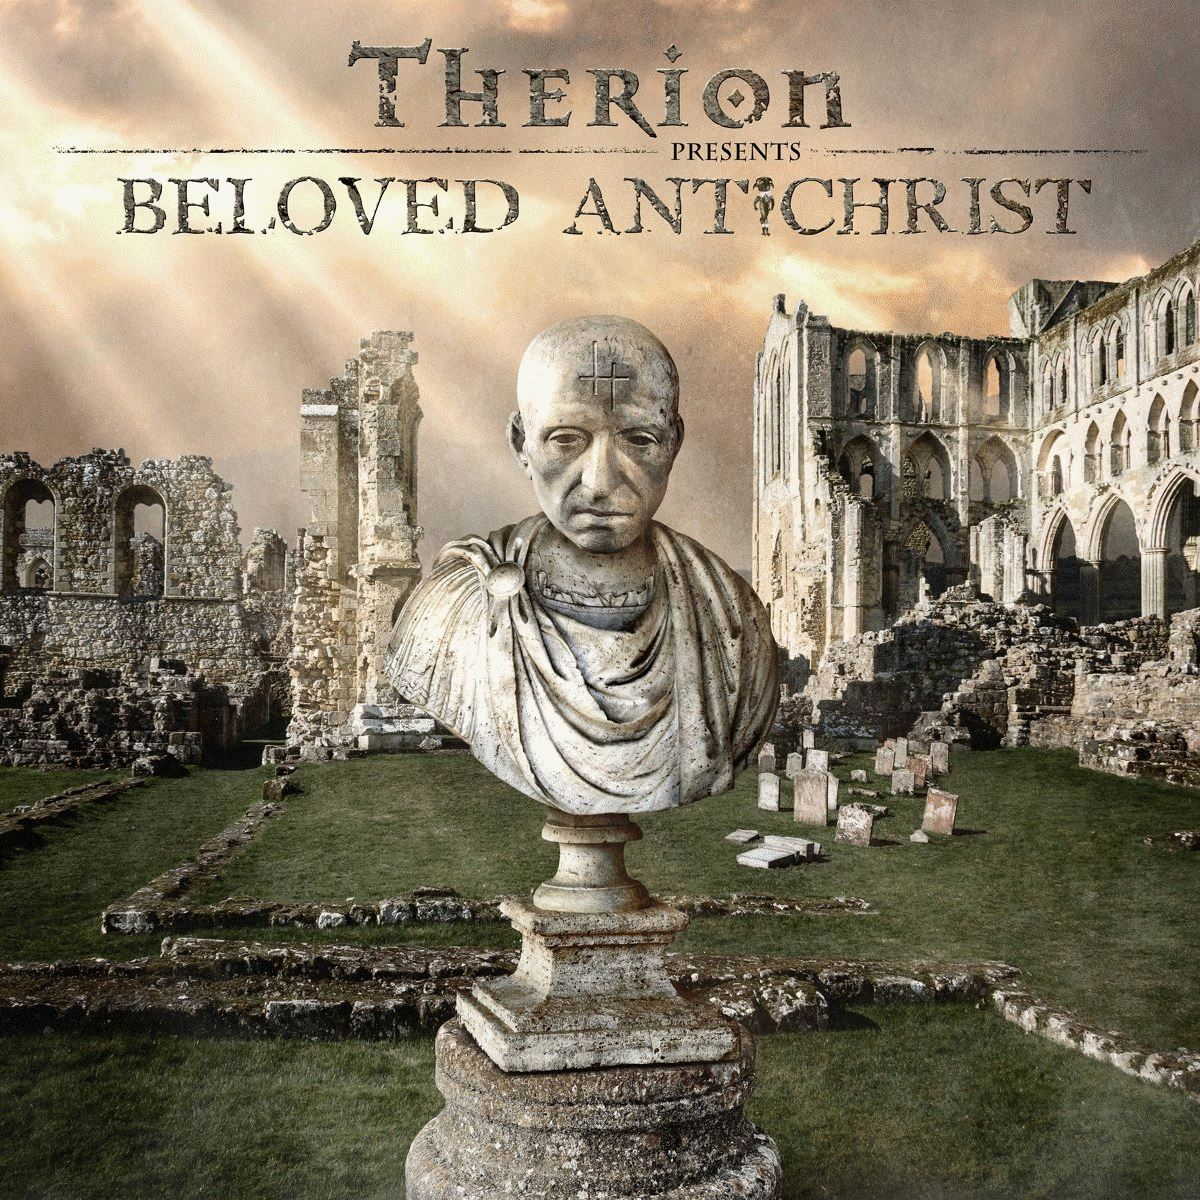 therion_beloved_antichrist_2018